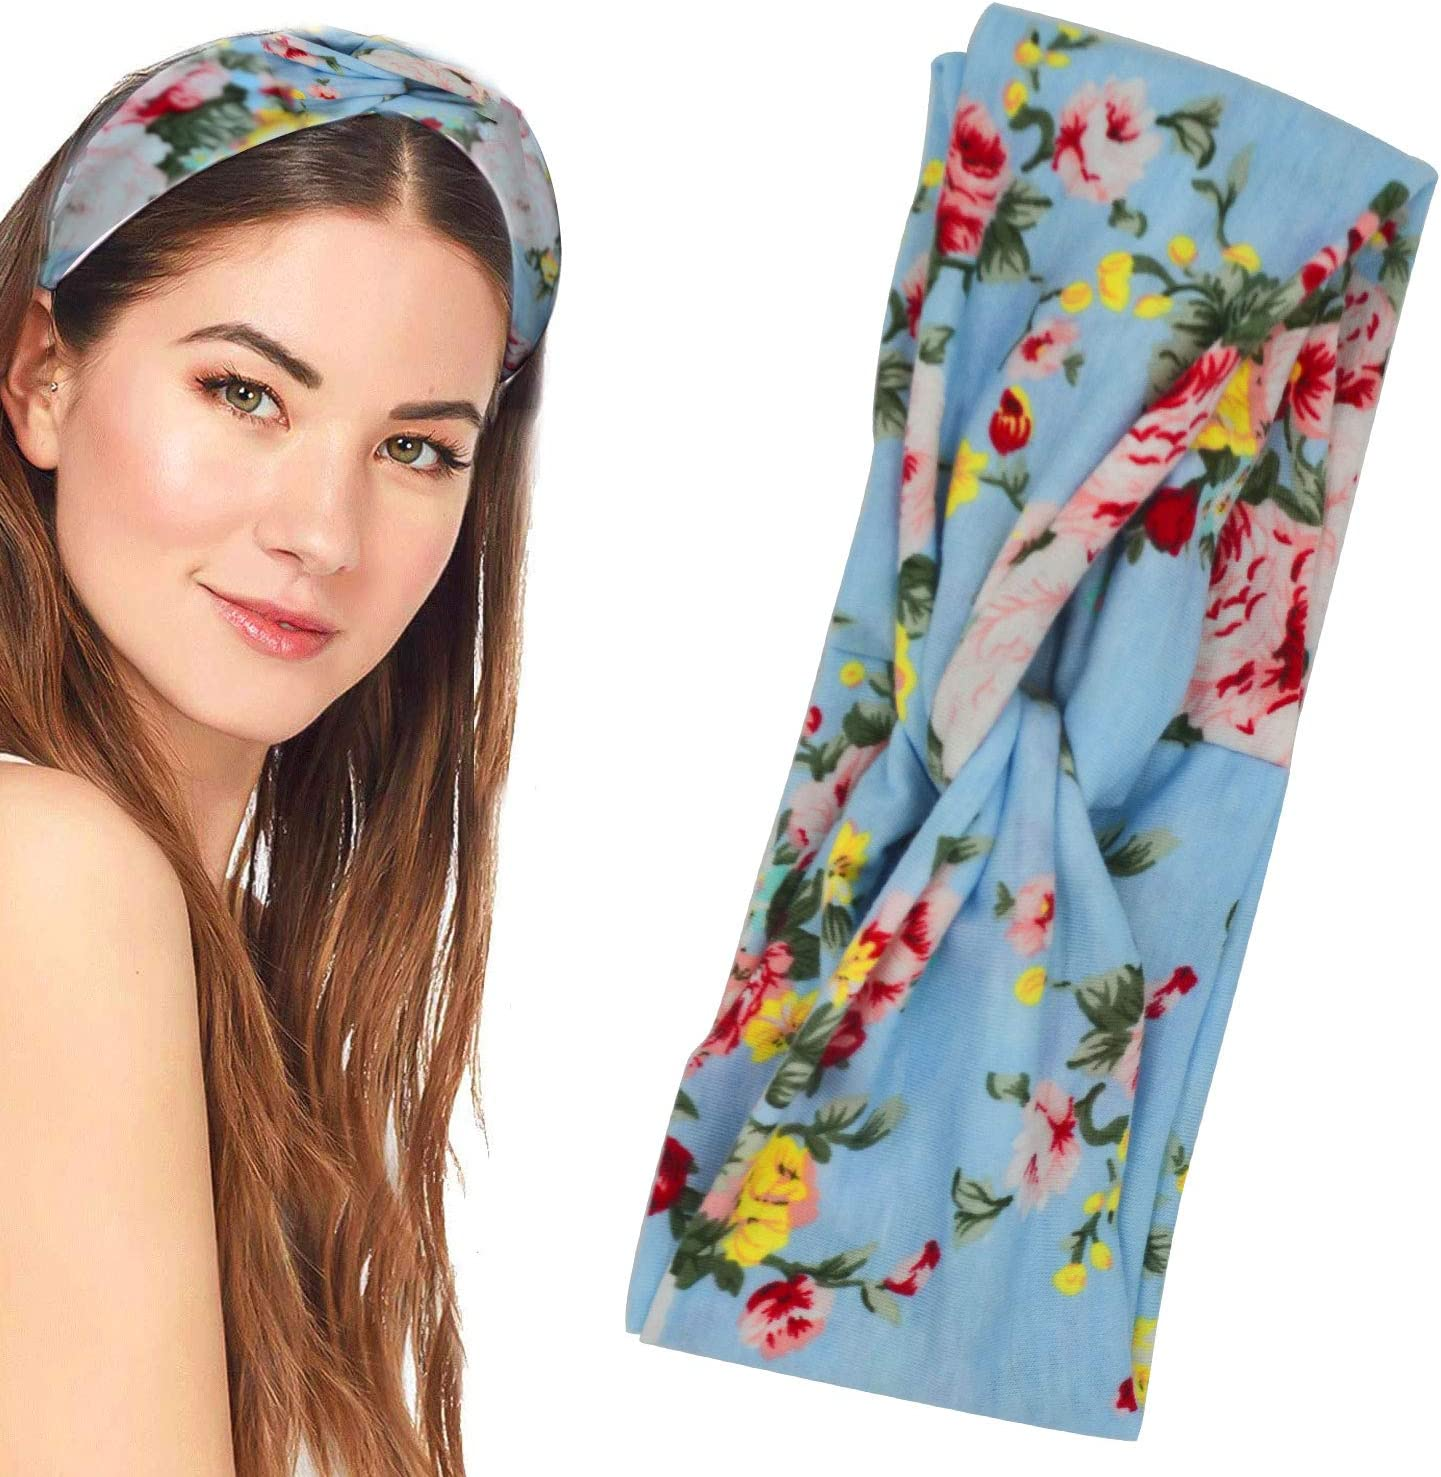 12 Pieces Women Headbands Vintage Elastic Flower Printed Boho Floal Style Criss Cross Twisted Hair Band Head Wrap Cute Hair Accessories for Women and Girls Wash Face Makeup Workout GYM Yoga Running